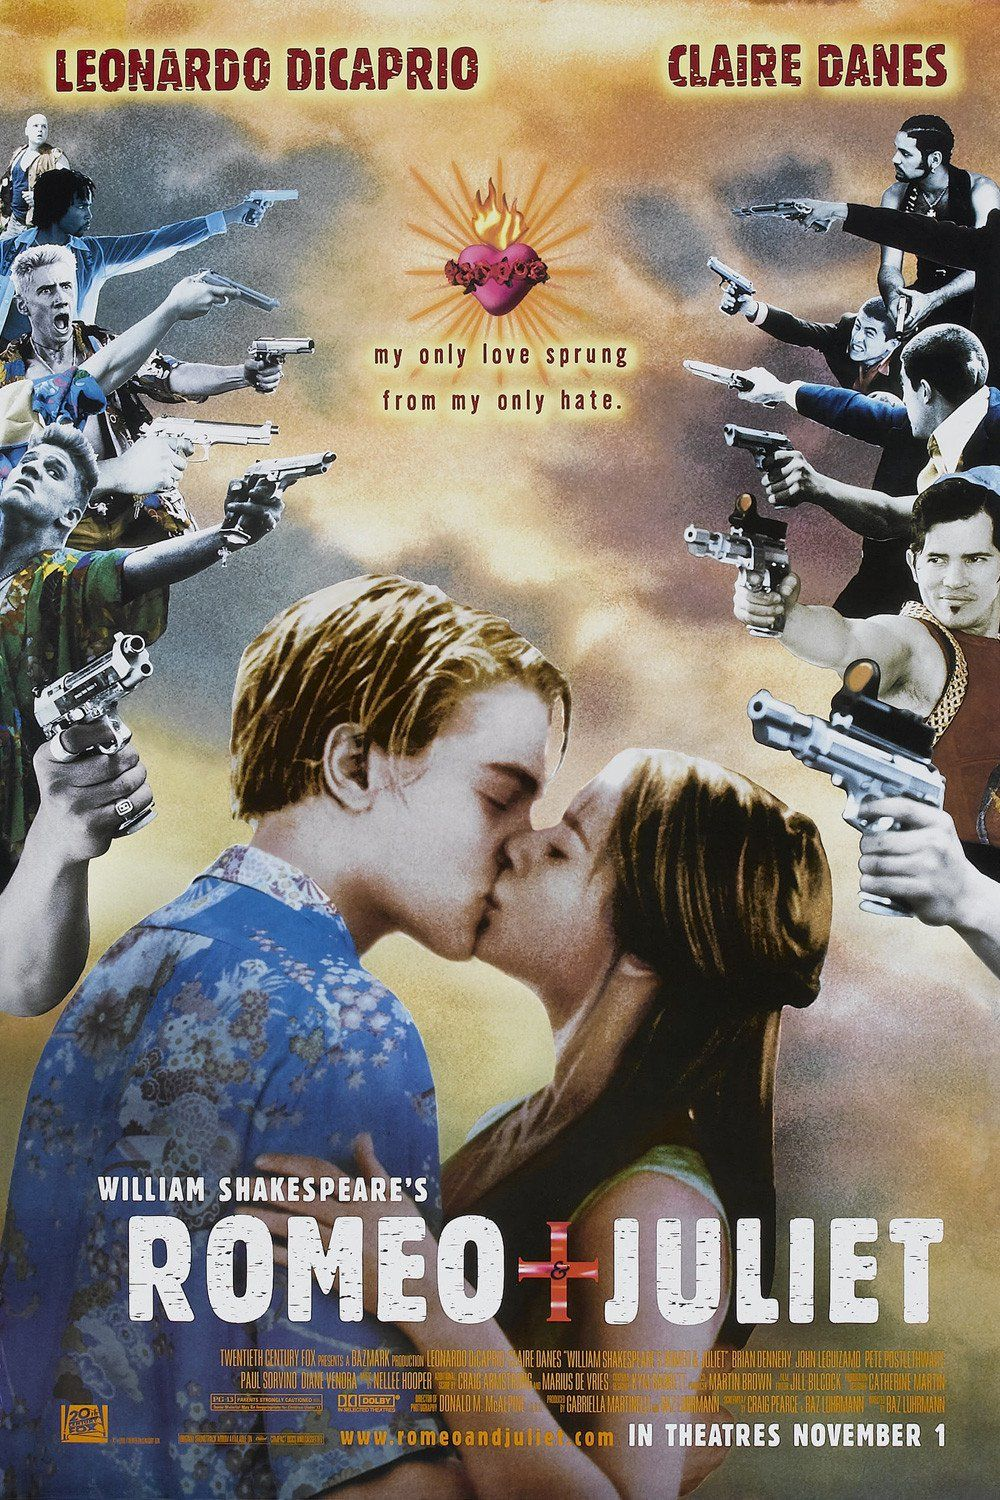 romeo juliet film critique Critique of romeo and juliet the movie there have been many romantic films made in the past as well as now in the present, from wuthering heights to pretty woman.